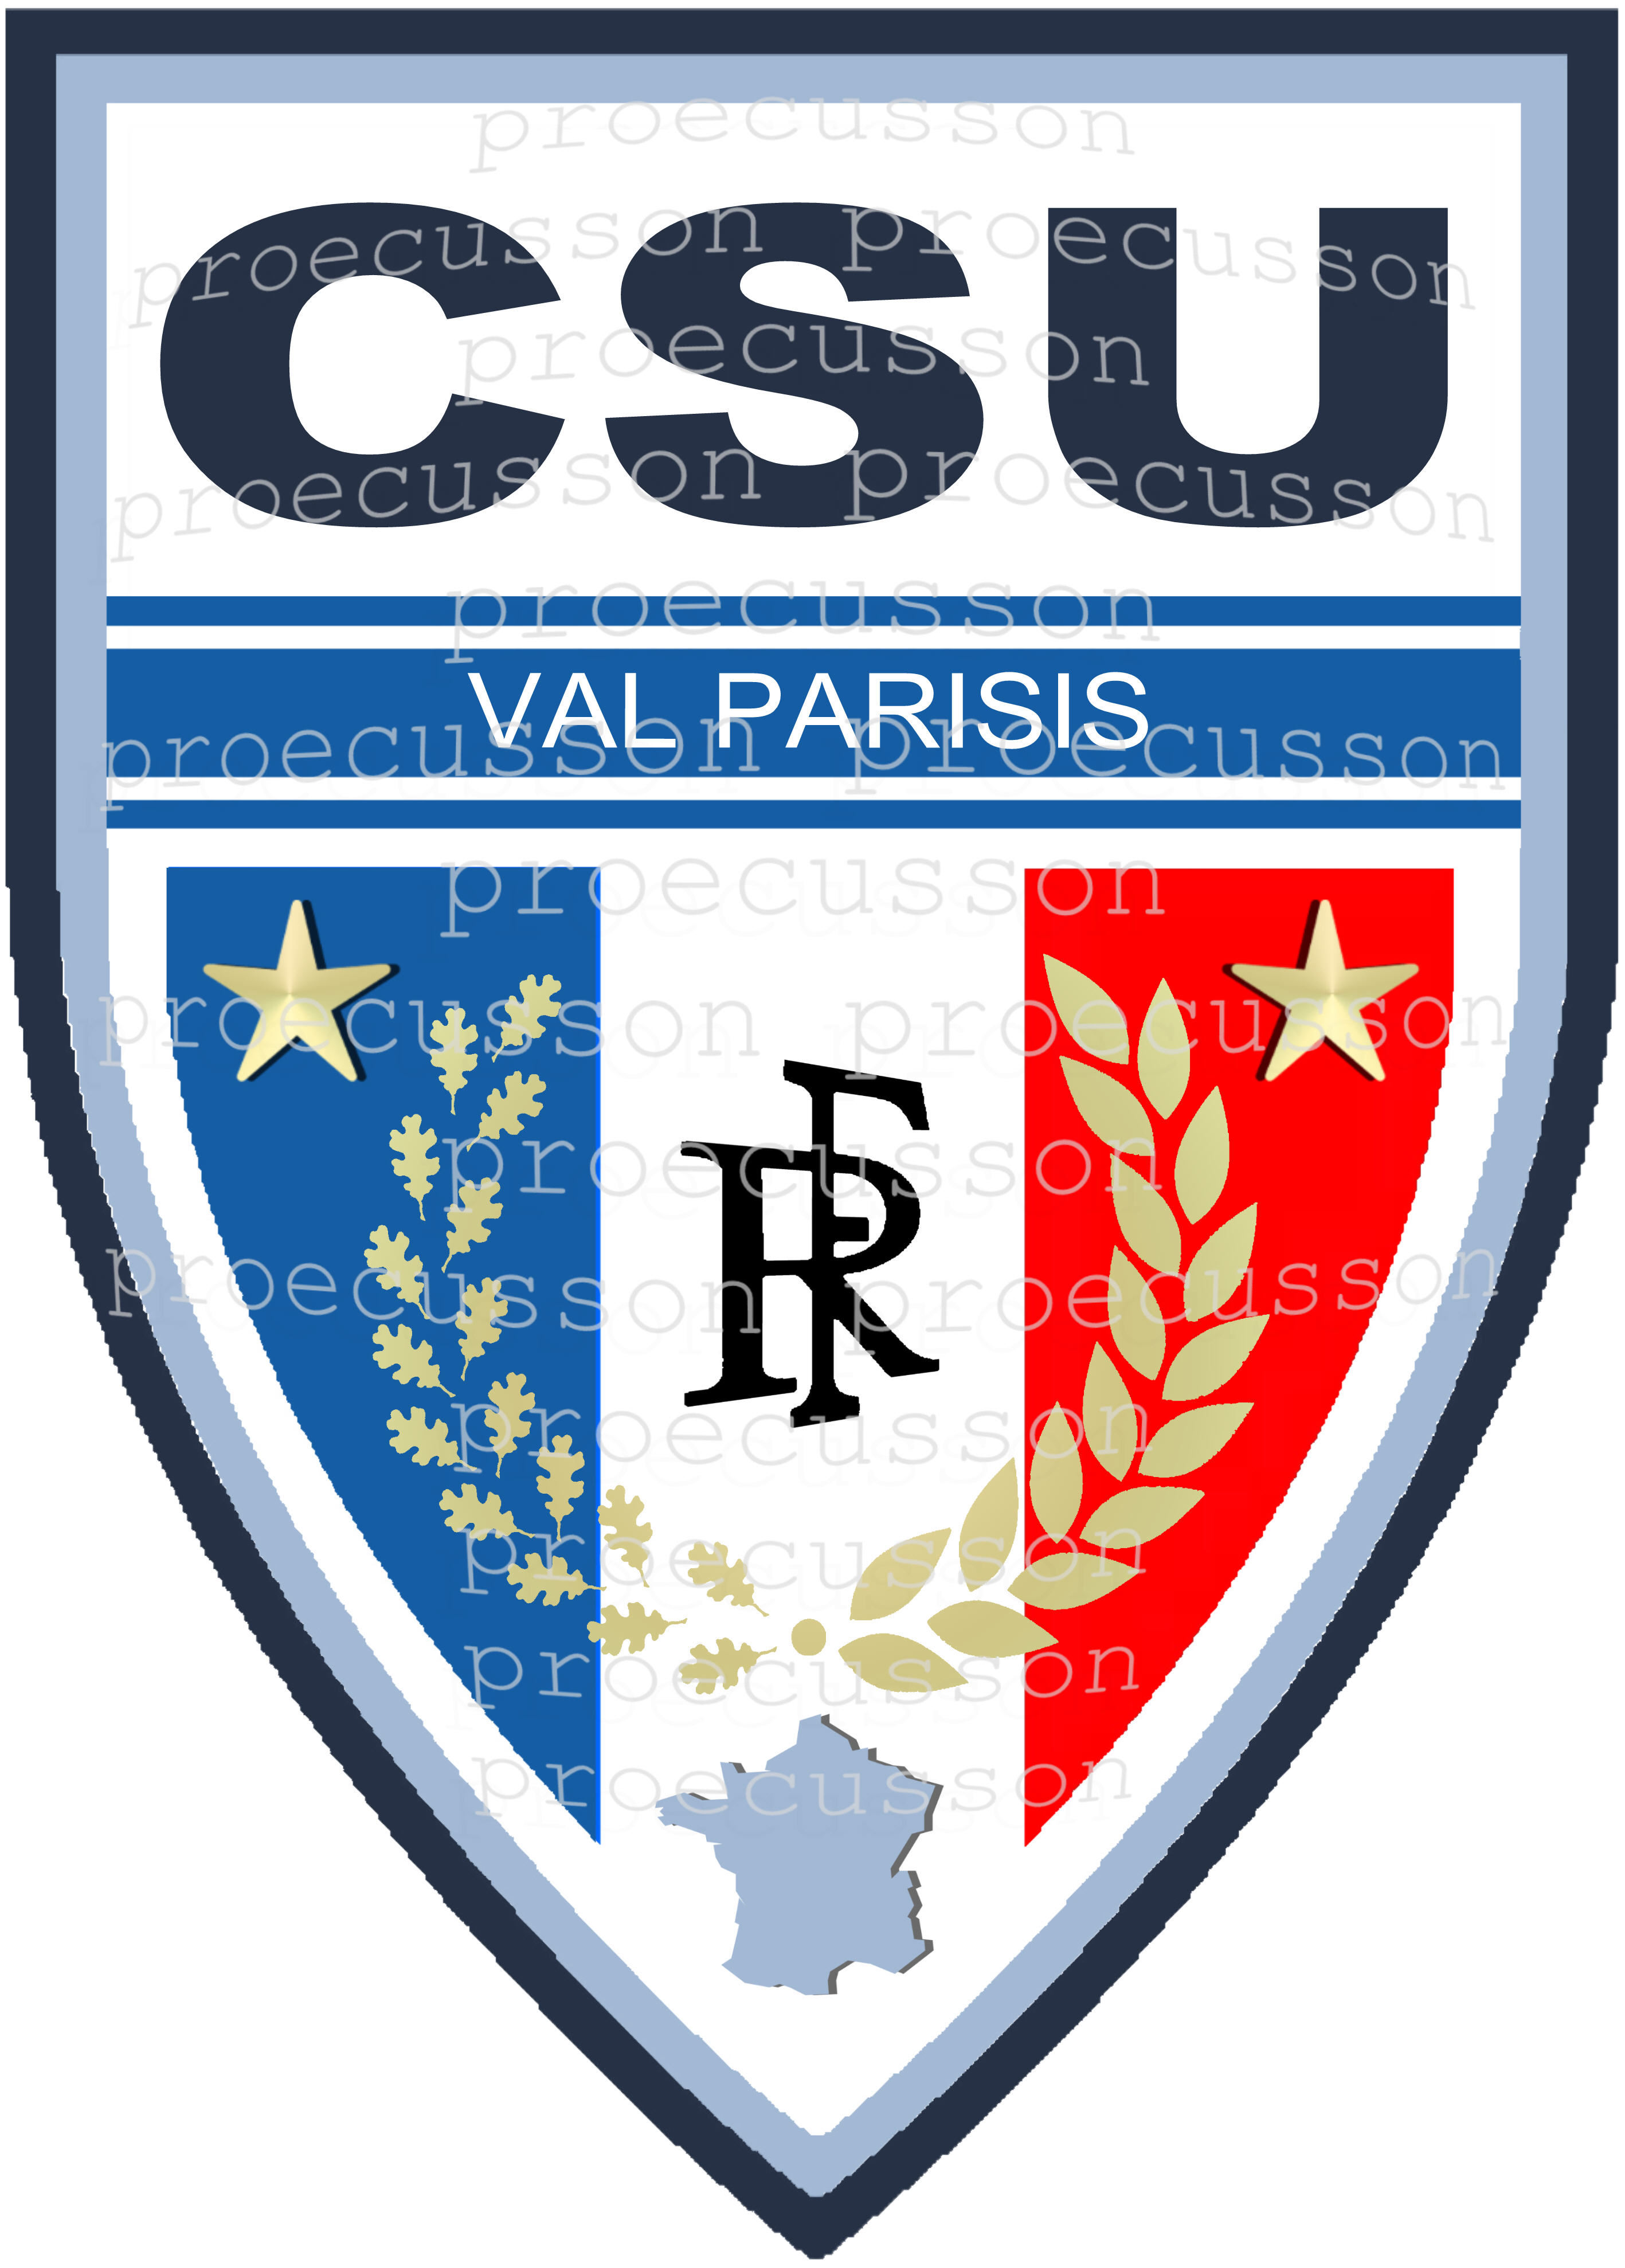 POLICE MUNICIPALE INTERCOMMUNALE VAL PARISIS CSU